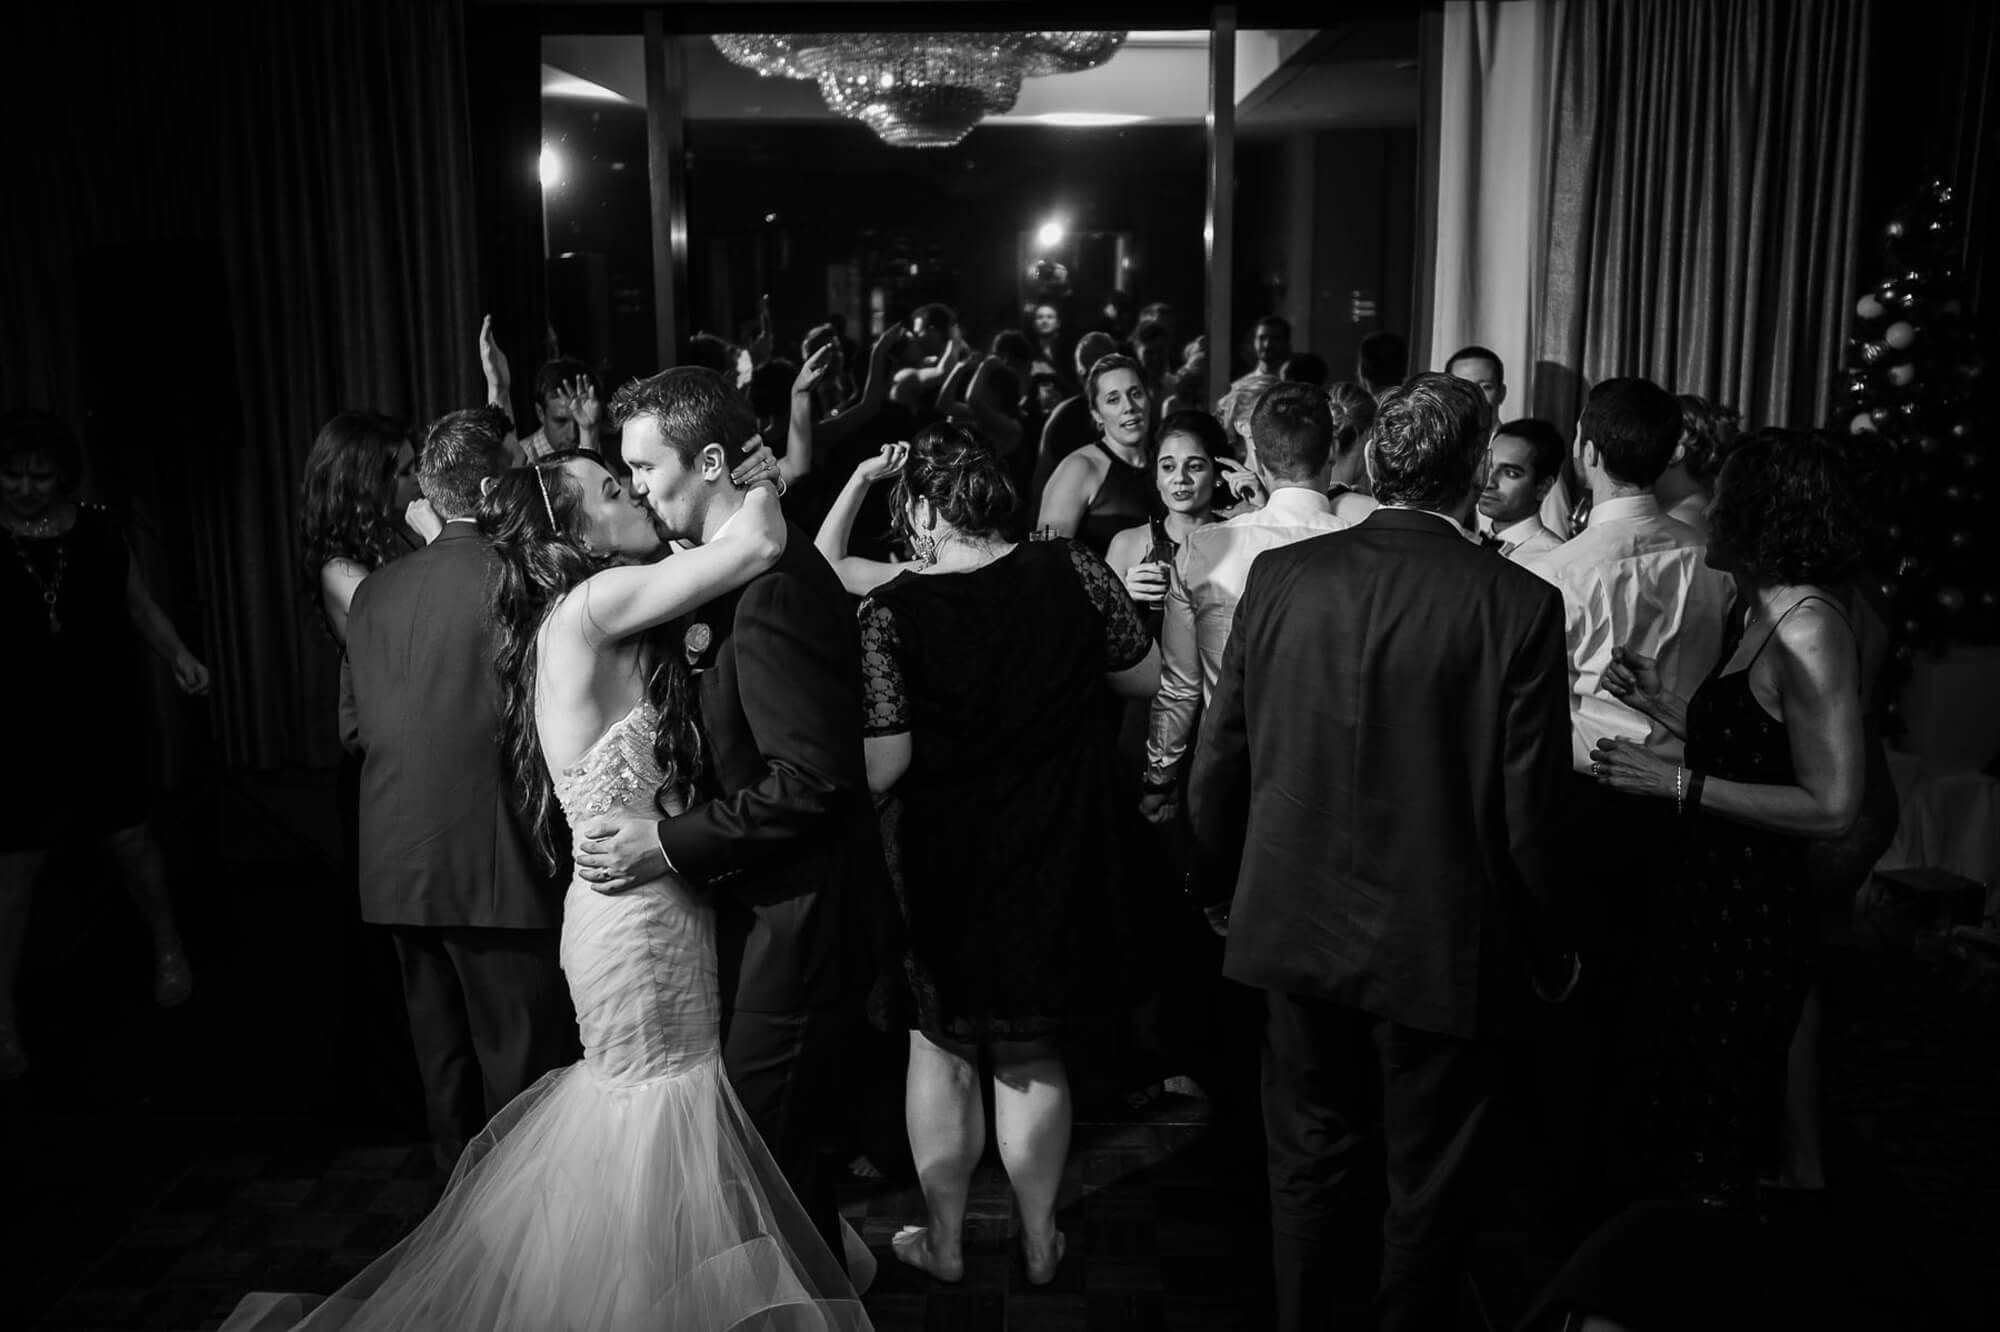 Park Hyatt Wedding Photography Toronto Bride And Groom Kiss Black White